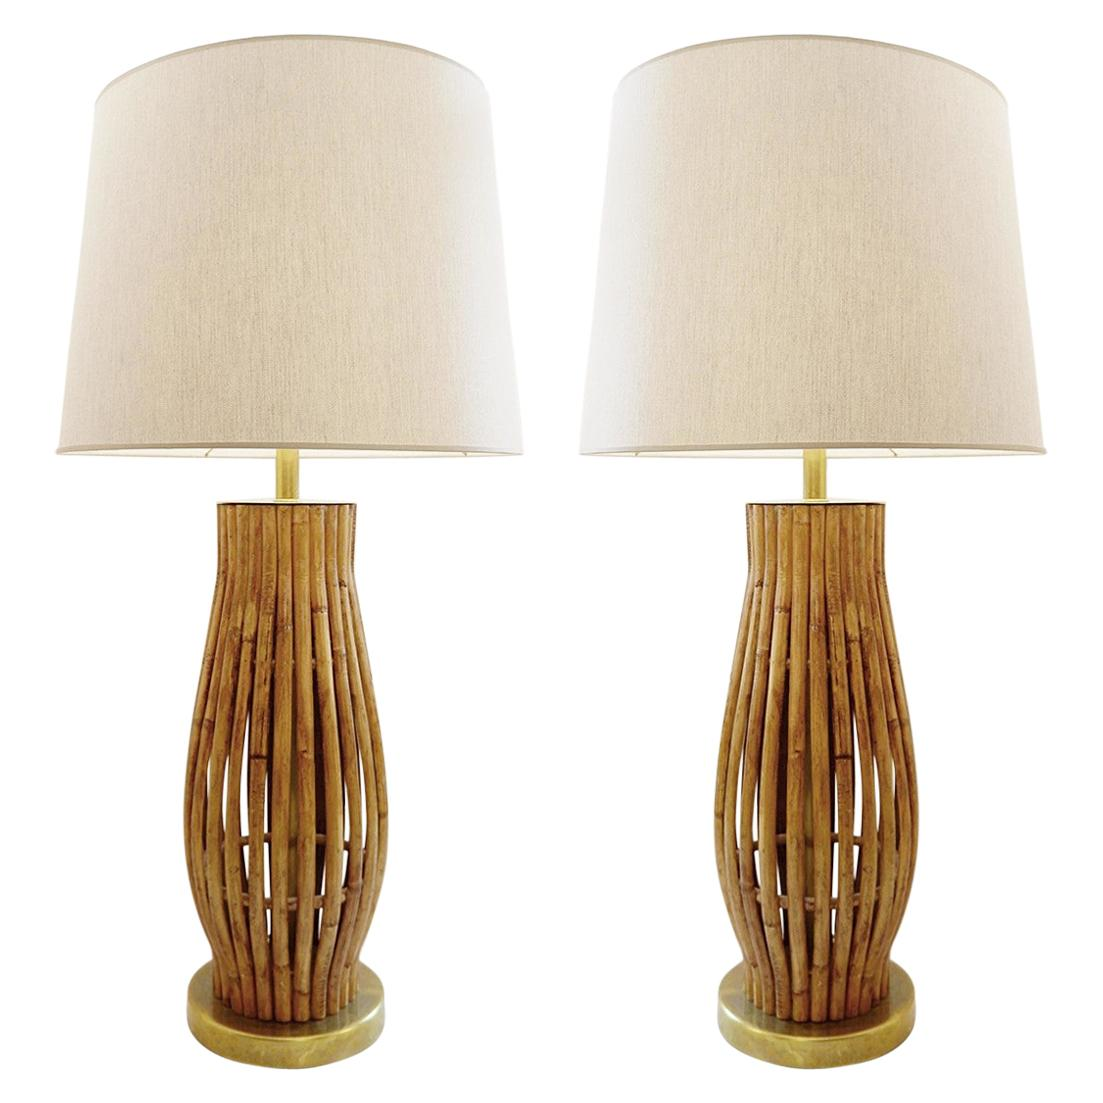 Pair of Large Mid-Century Modern Brass and Bamboo Table Lamps